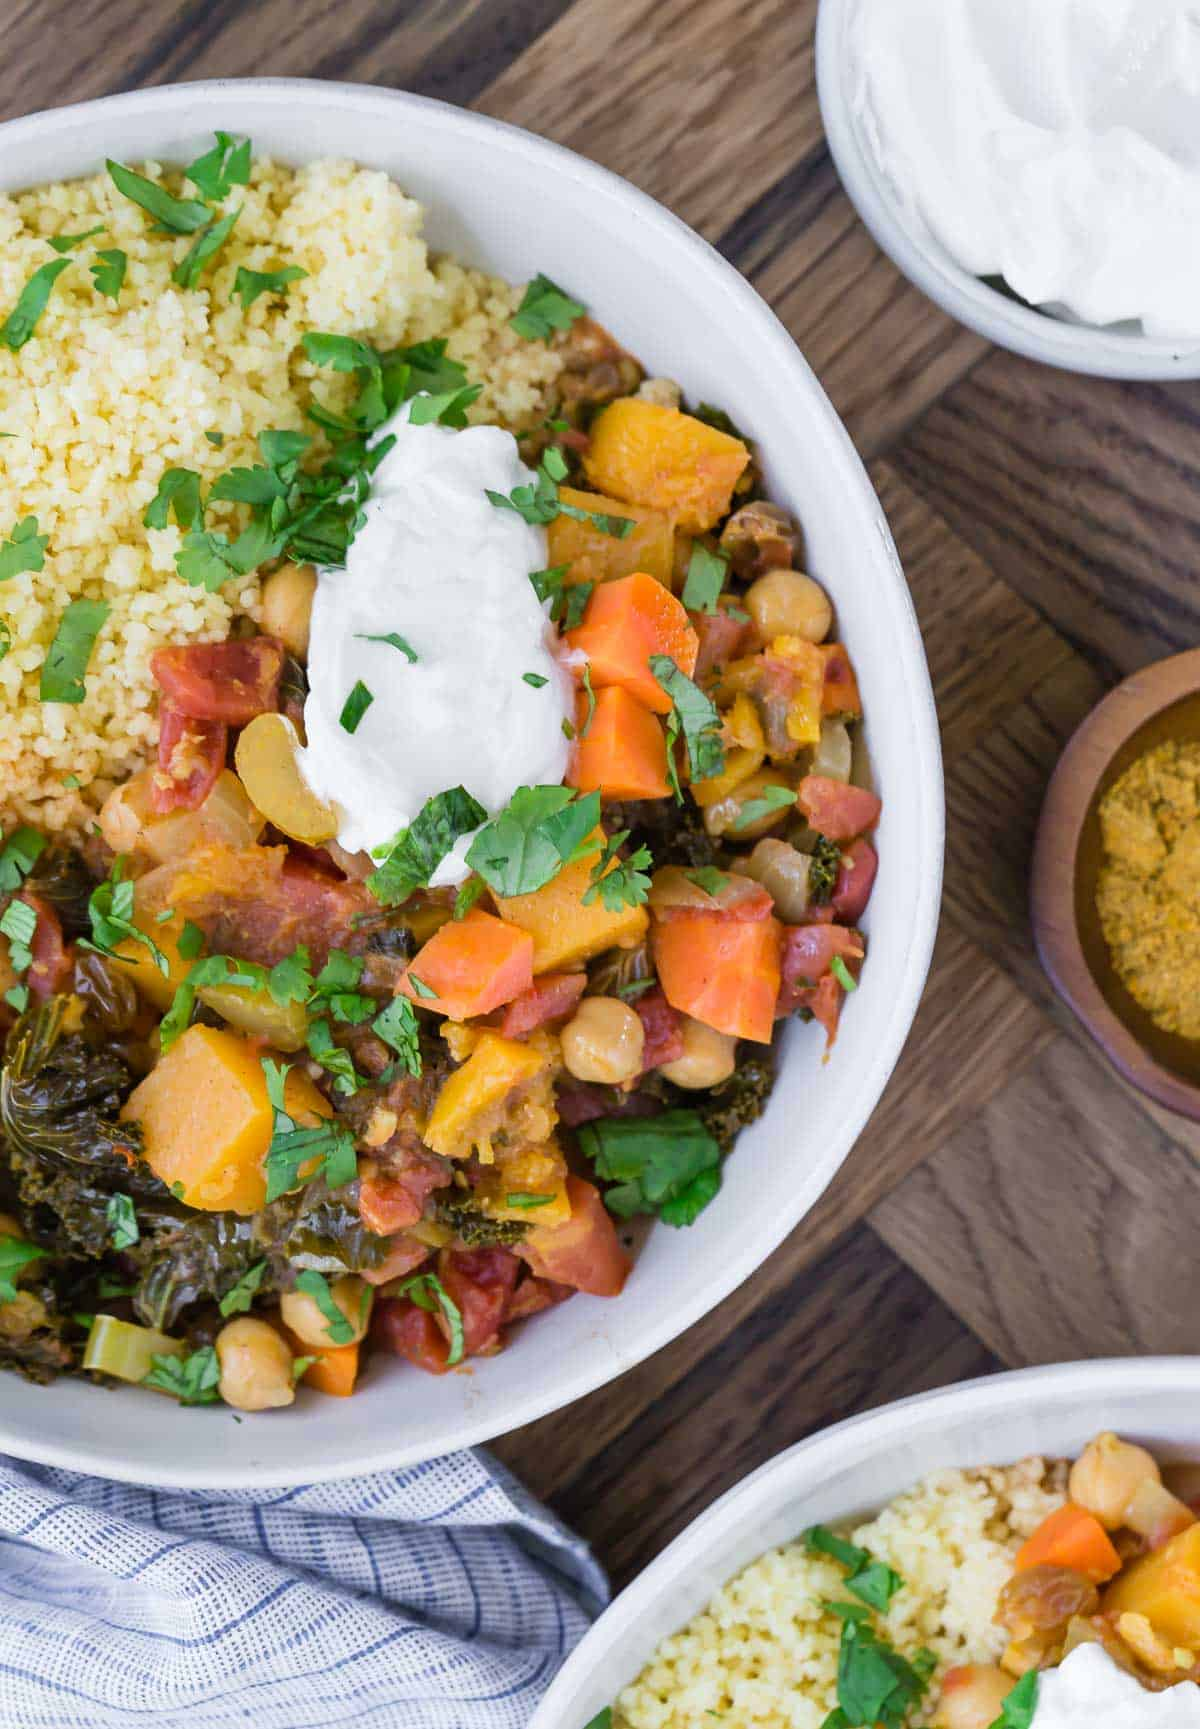 Overhead view of moroccan stew with butternut squash and chickpeas in a white bowl. It is served with yogurt and couscous.